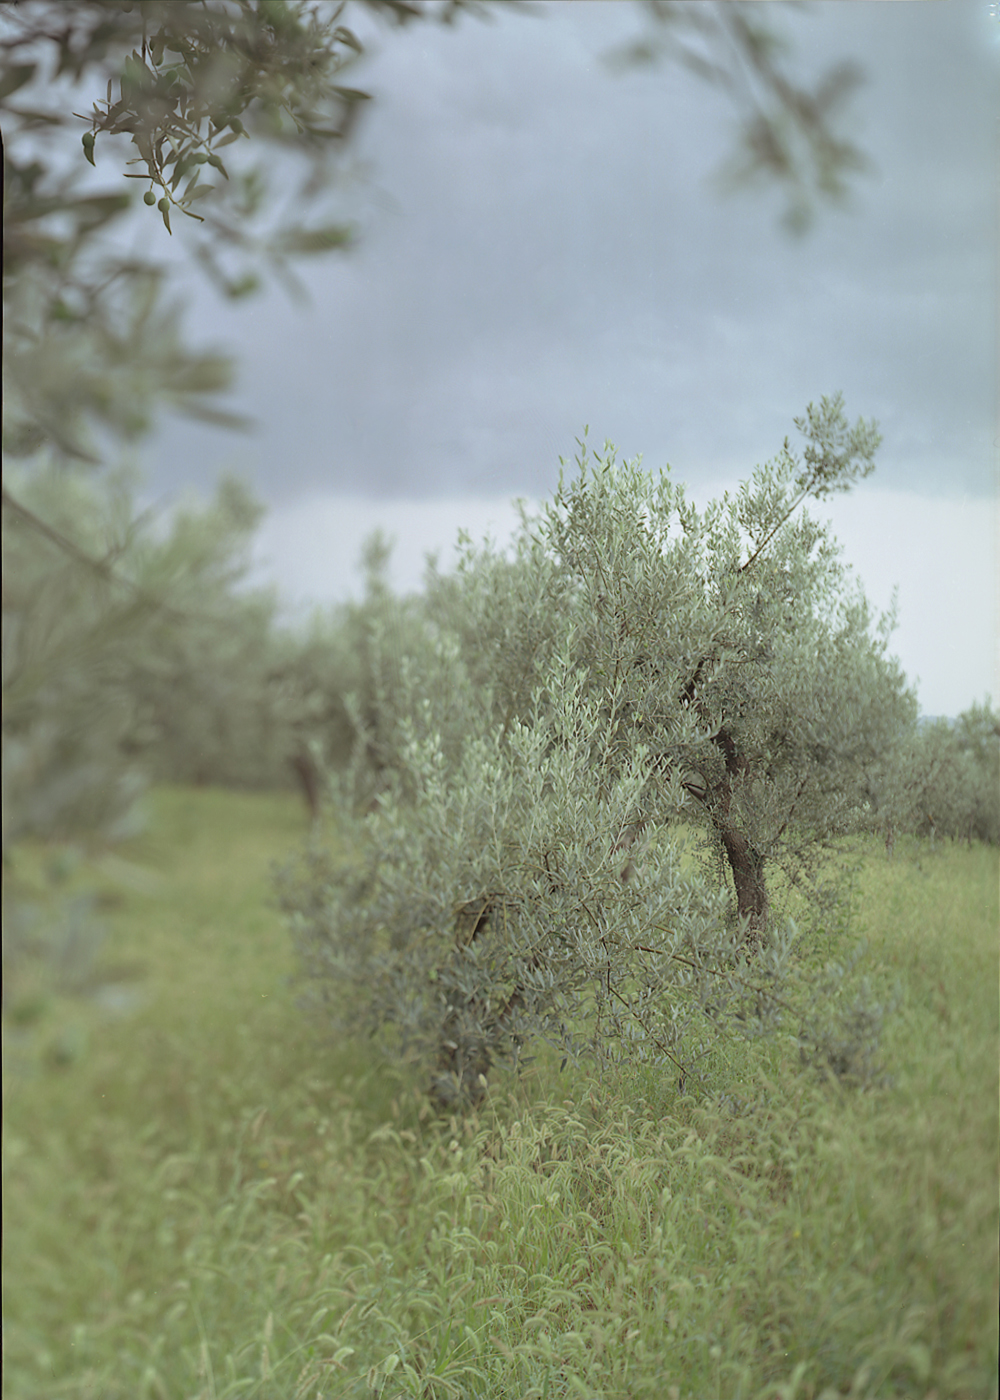 JoAnn Verburg, Little Green Tree (with Olives), 2003, 40 x 28.5 inches, edition of 9, price on request